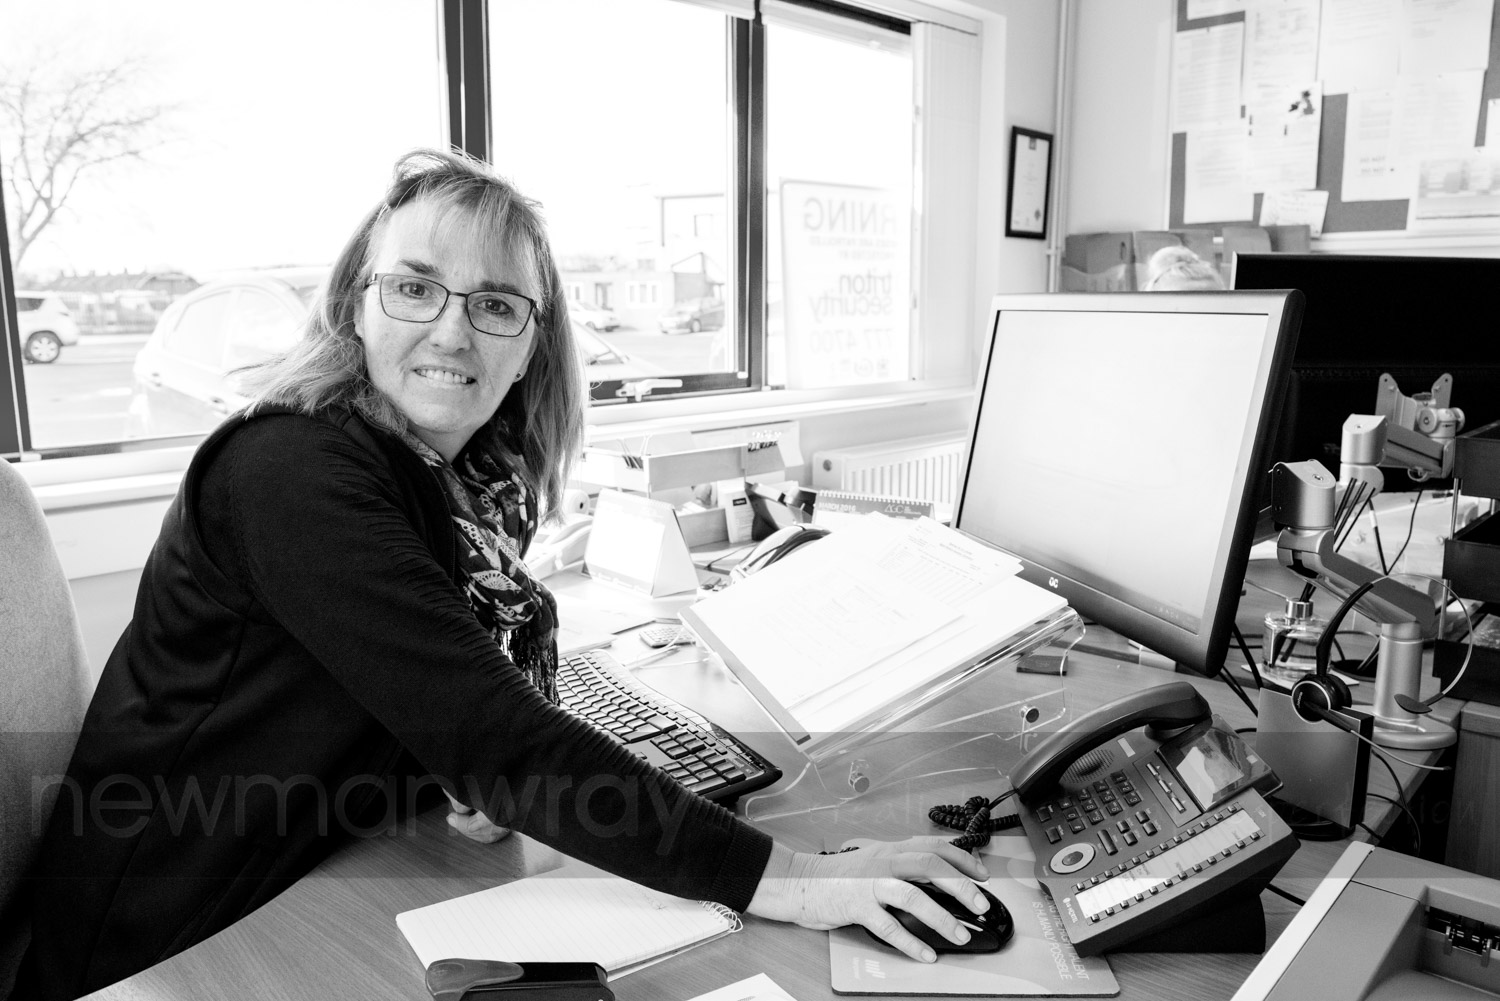 tadcaster_advertising_photography-41